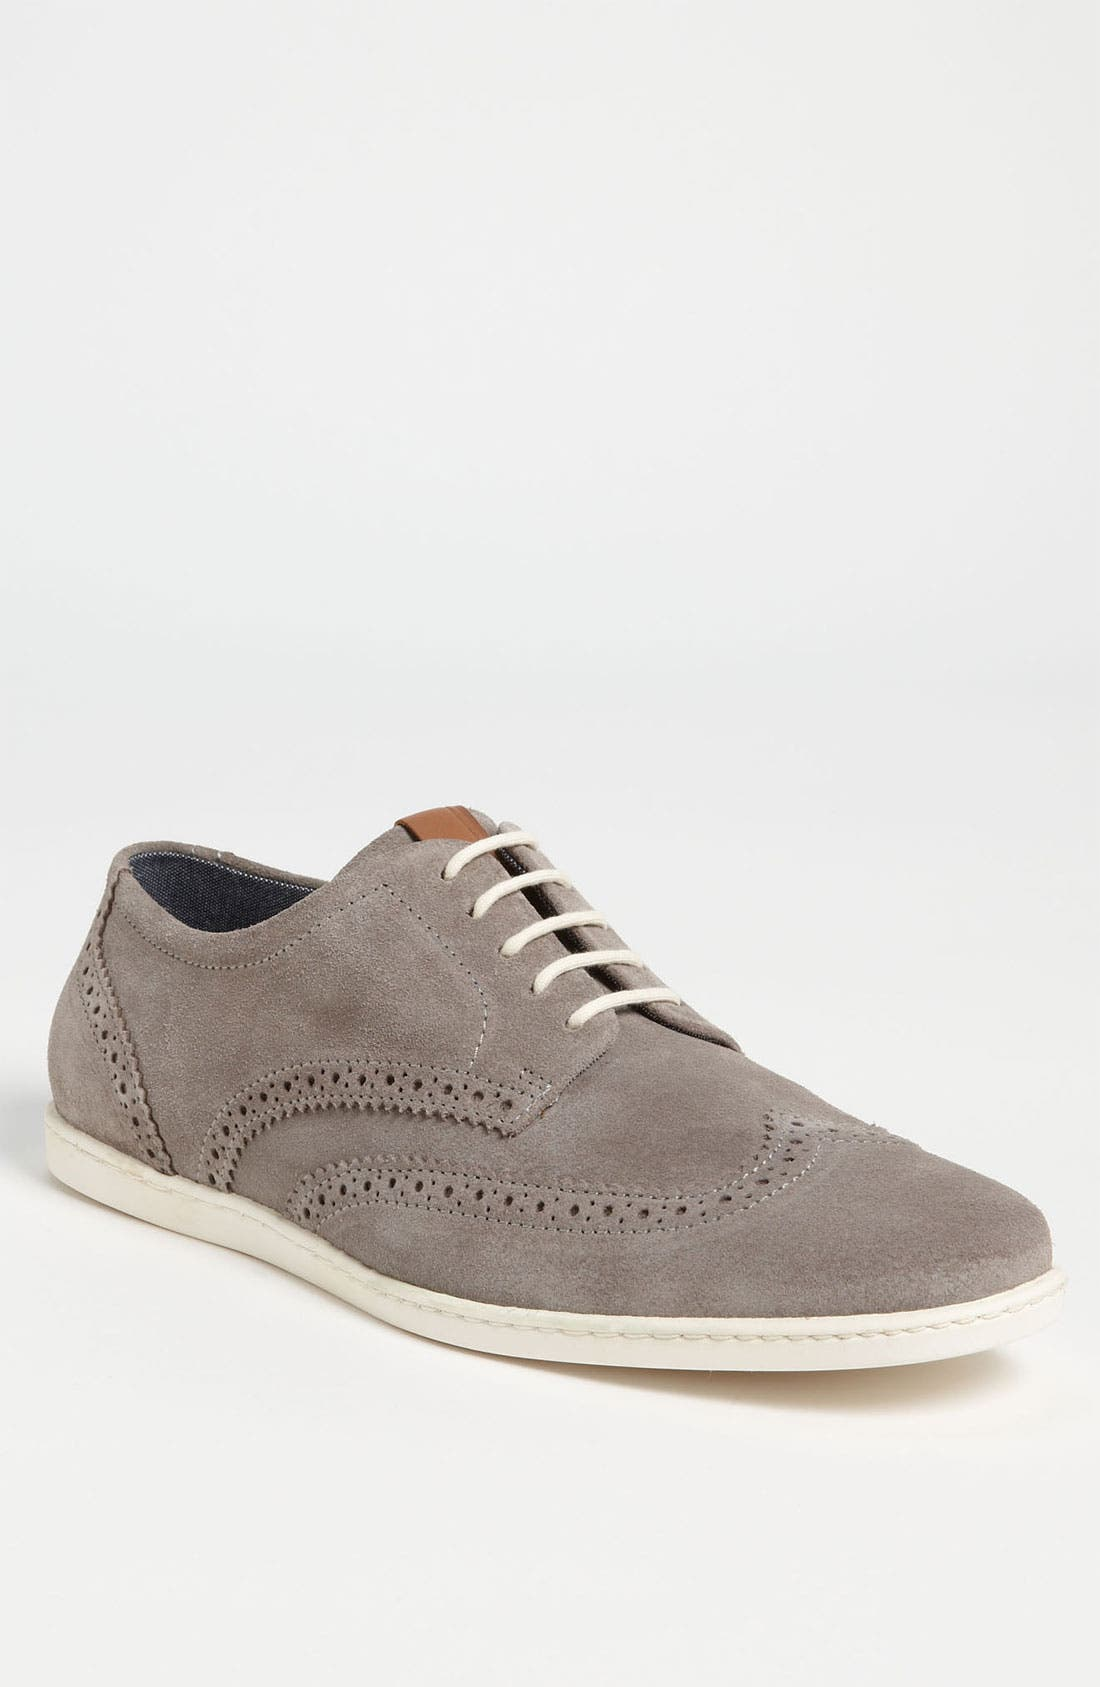 Main Image - Fred Perry 'Jacobs' Wingtip